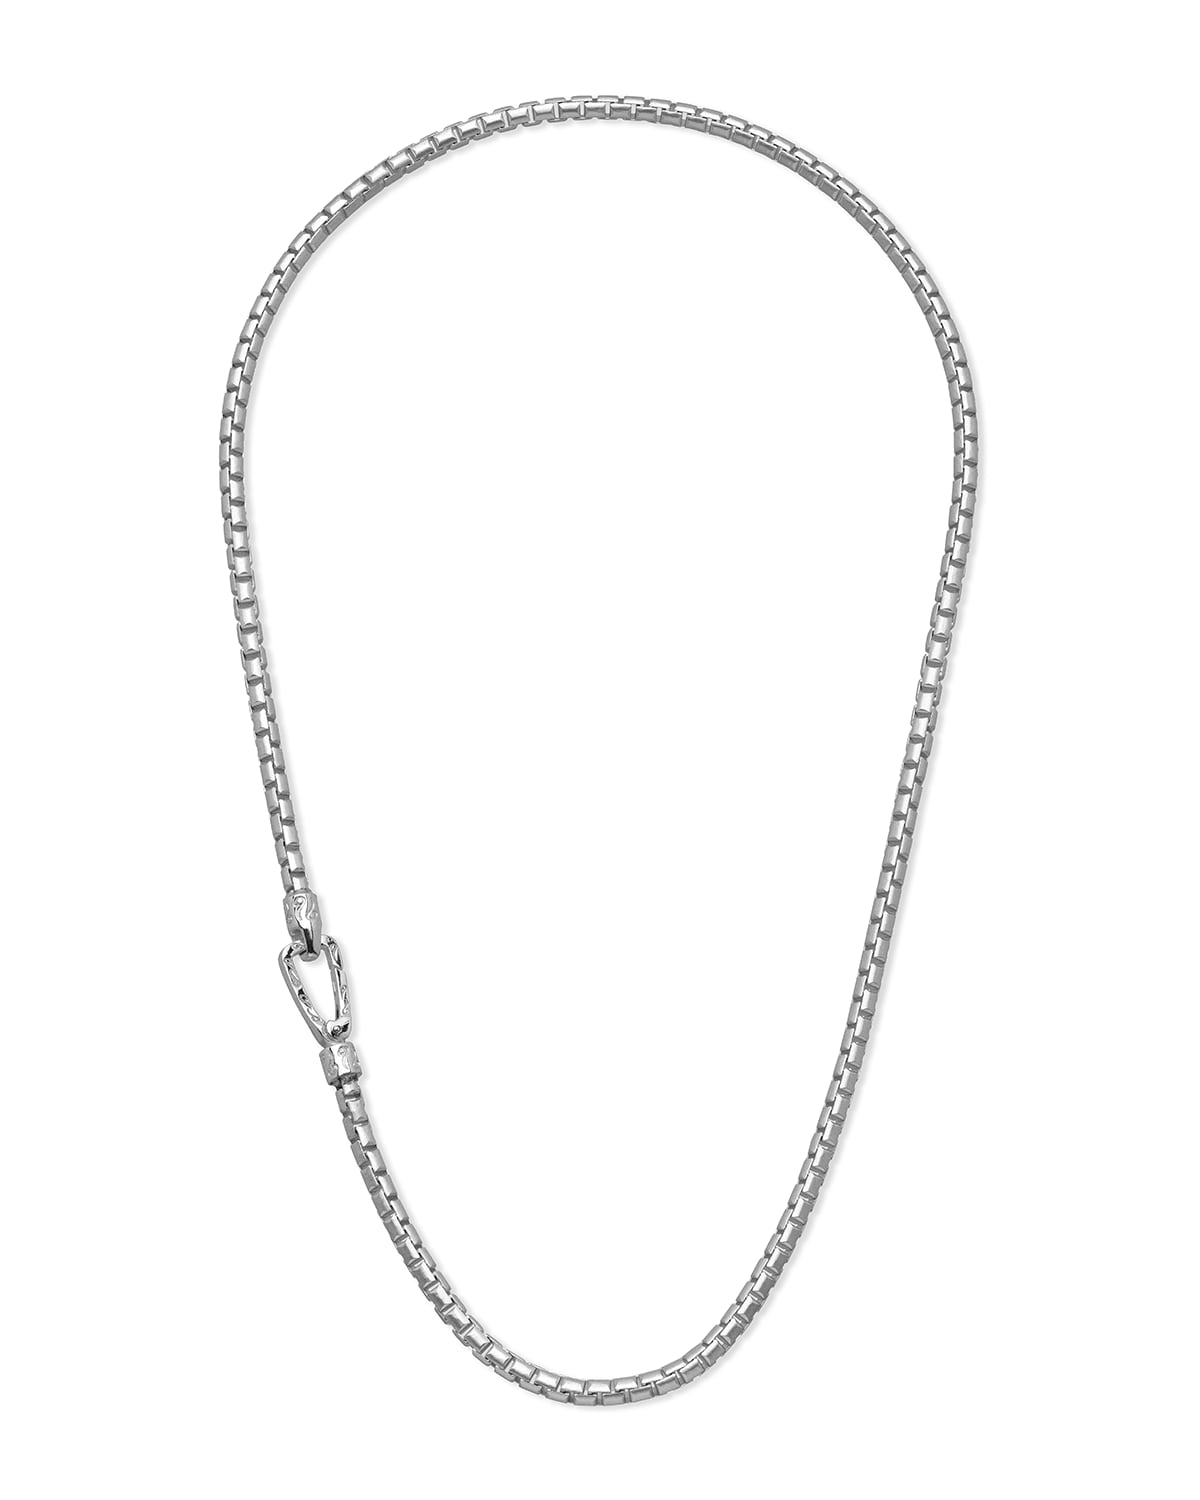 Carved Tubular White Polished Silver Necklace with Matte Chain and Polished Clasp